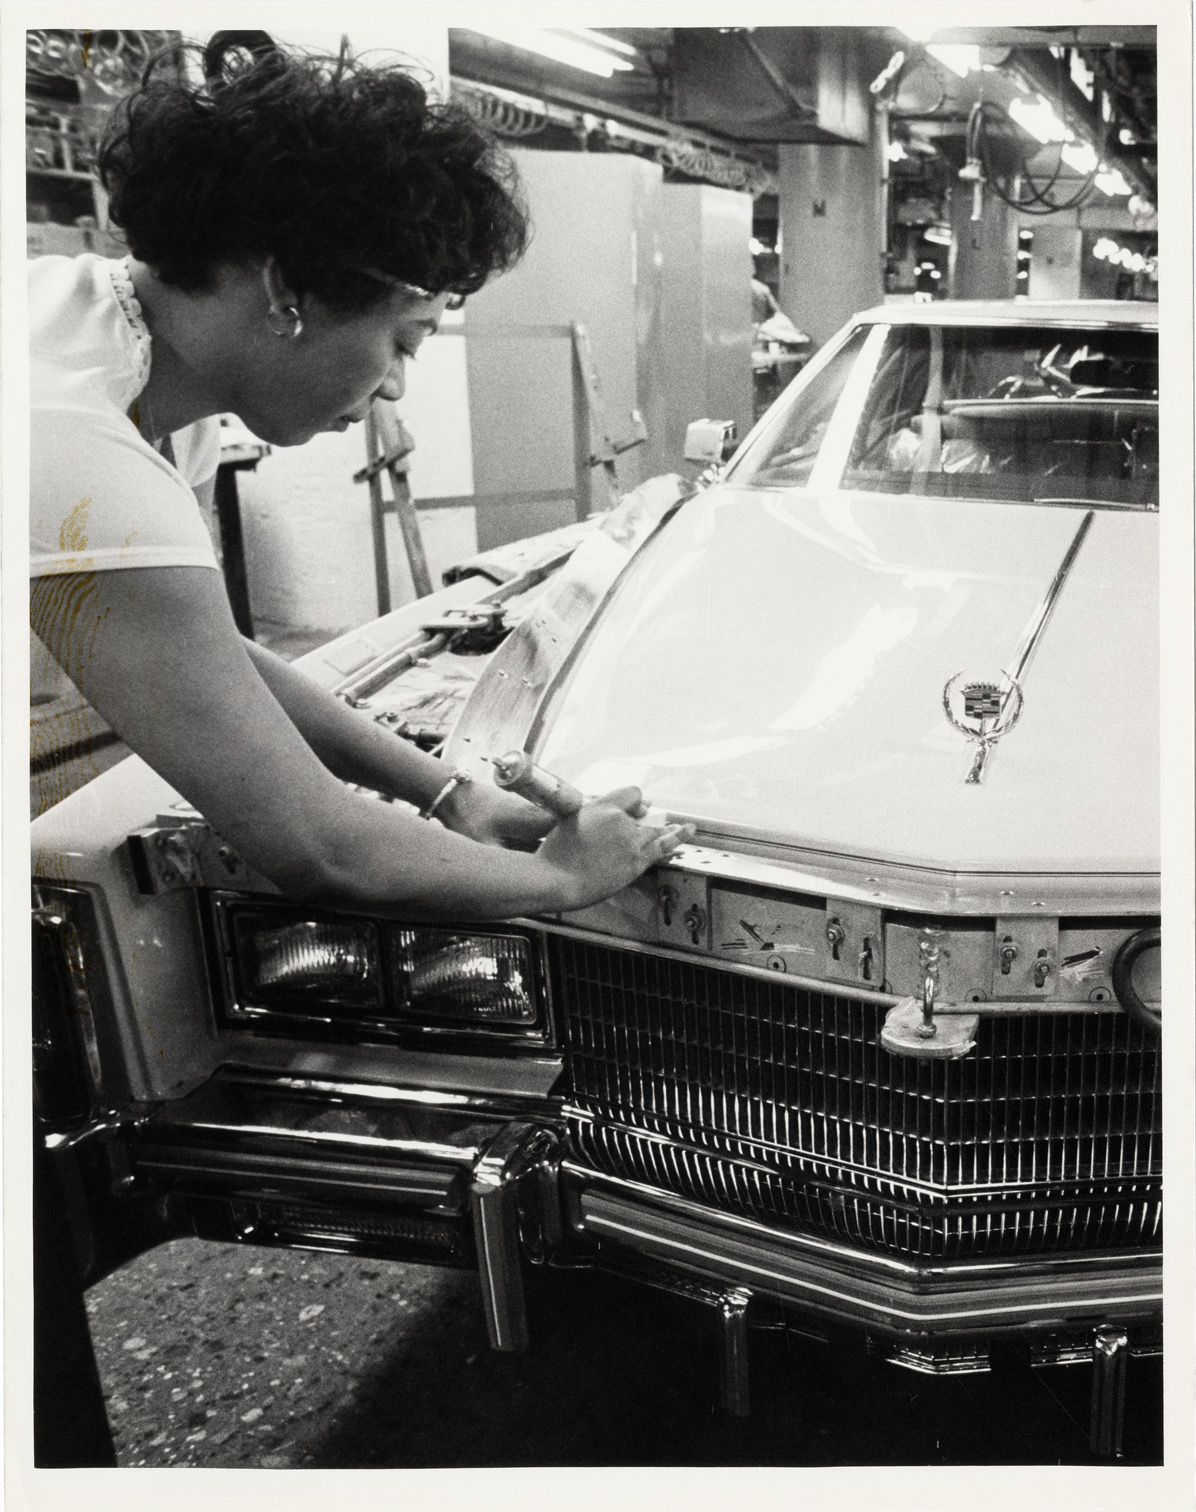 Toyota releases documentary on African Americans and the auto industry